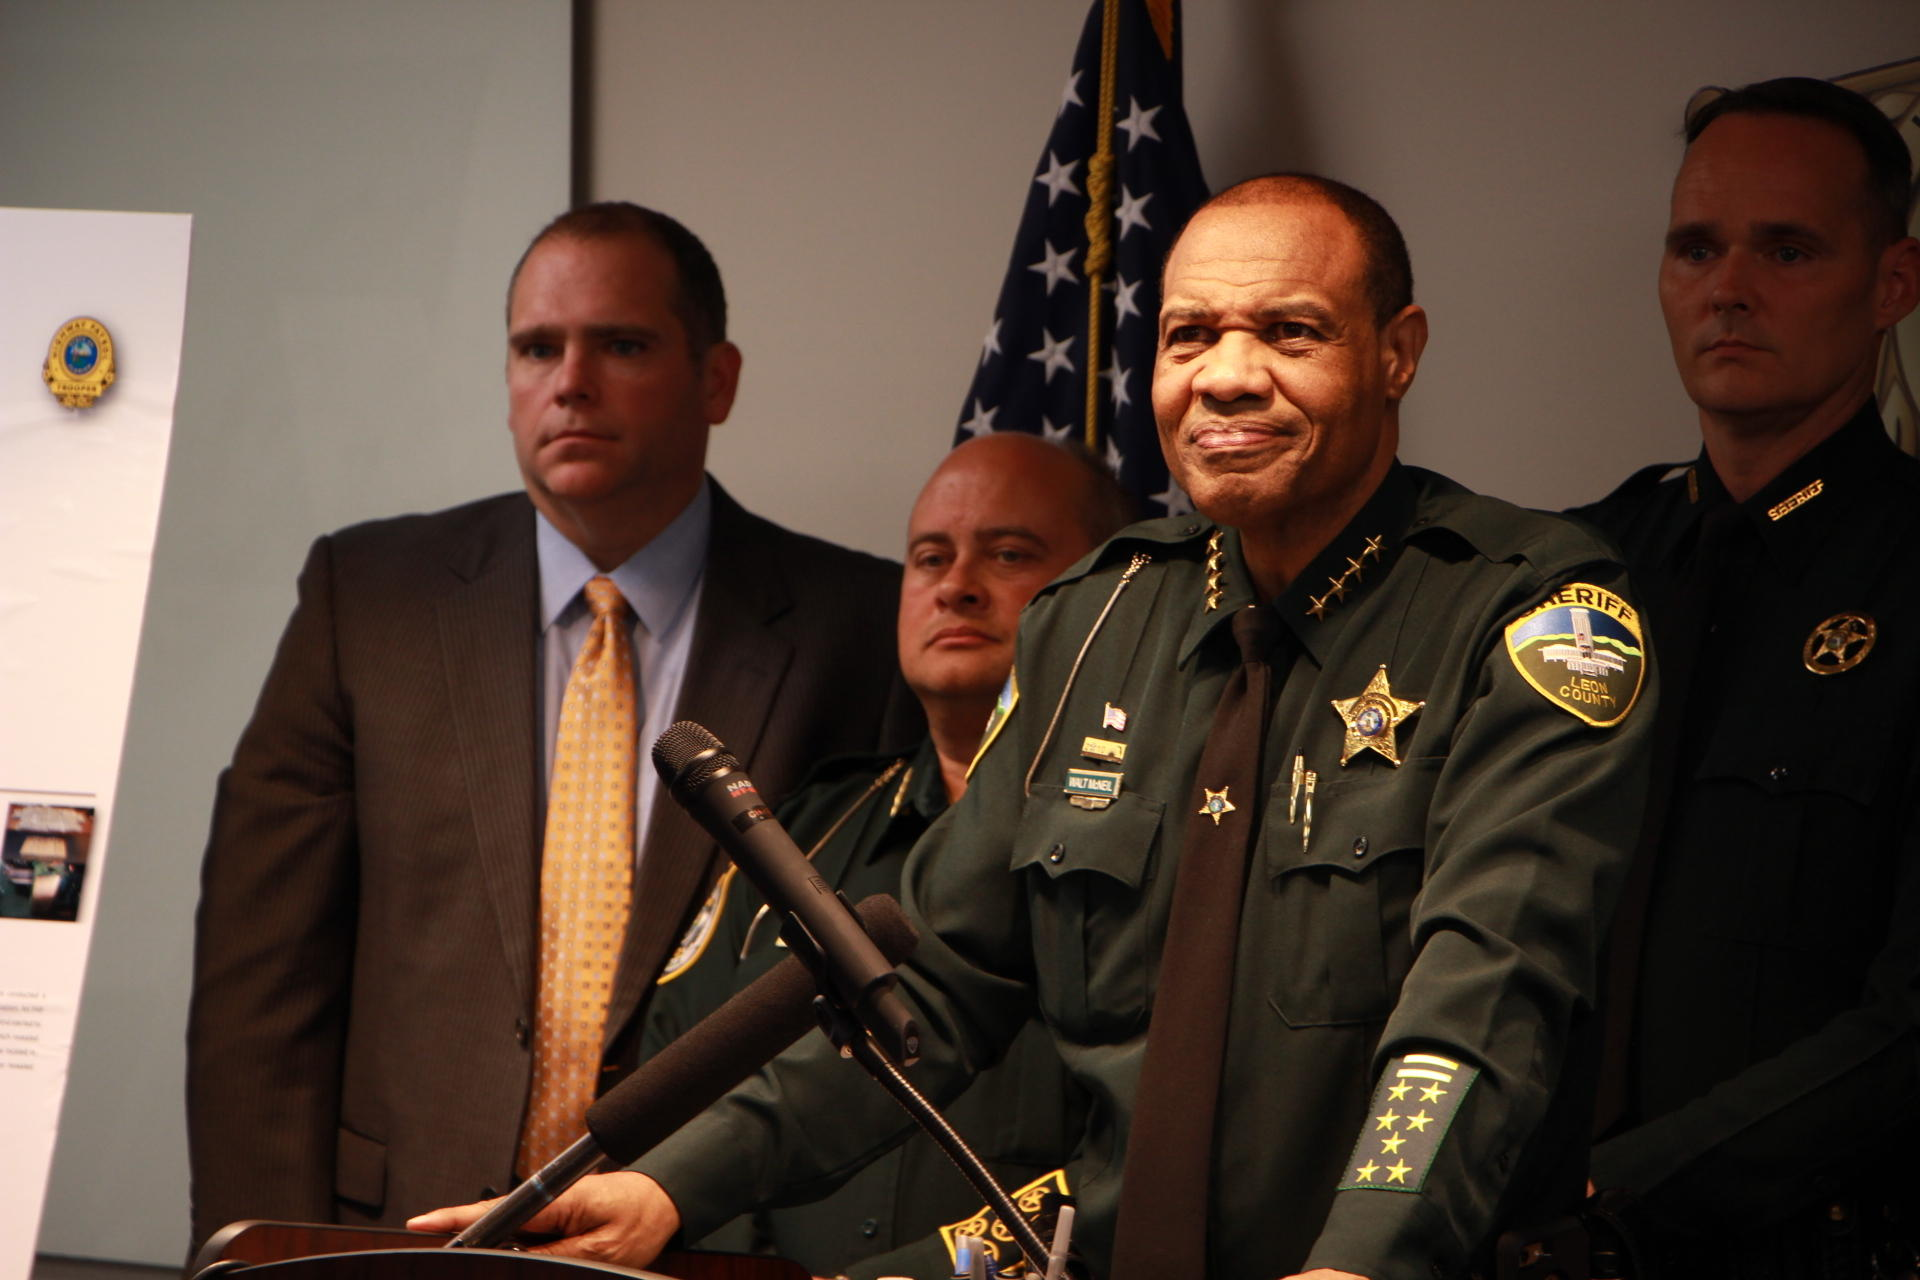 LCSO Expands Partnership With Big Bend Law Enforcement Agencies | WFSU